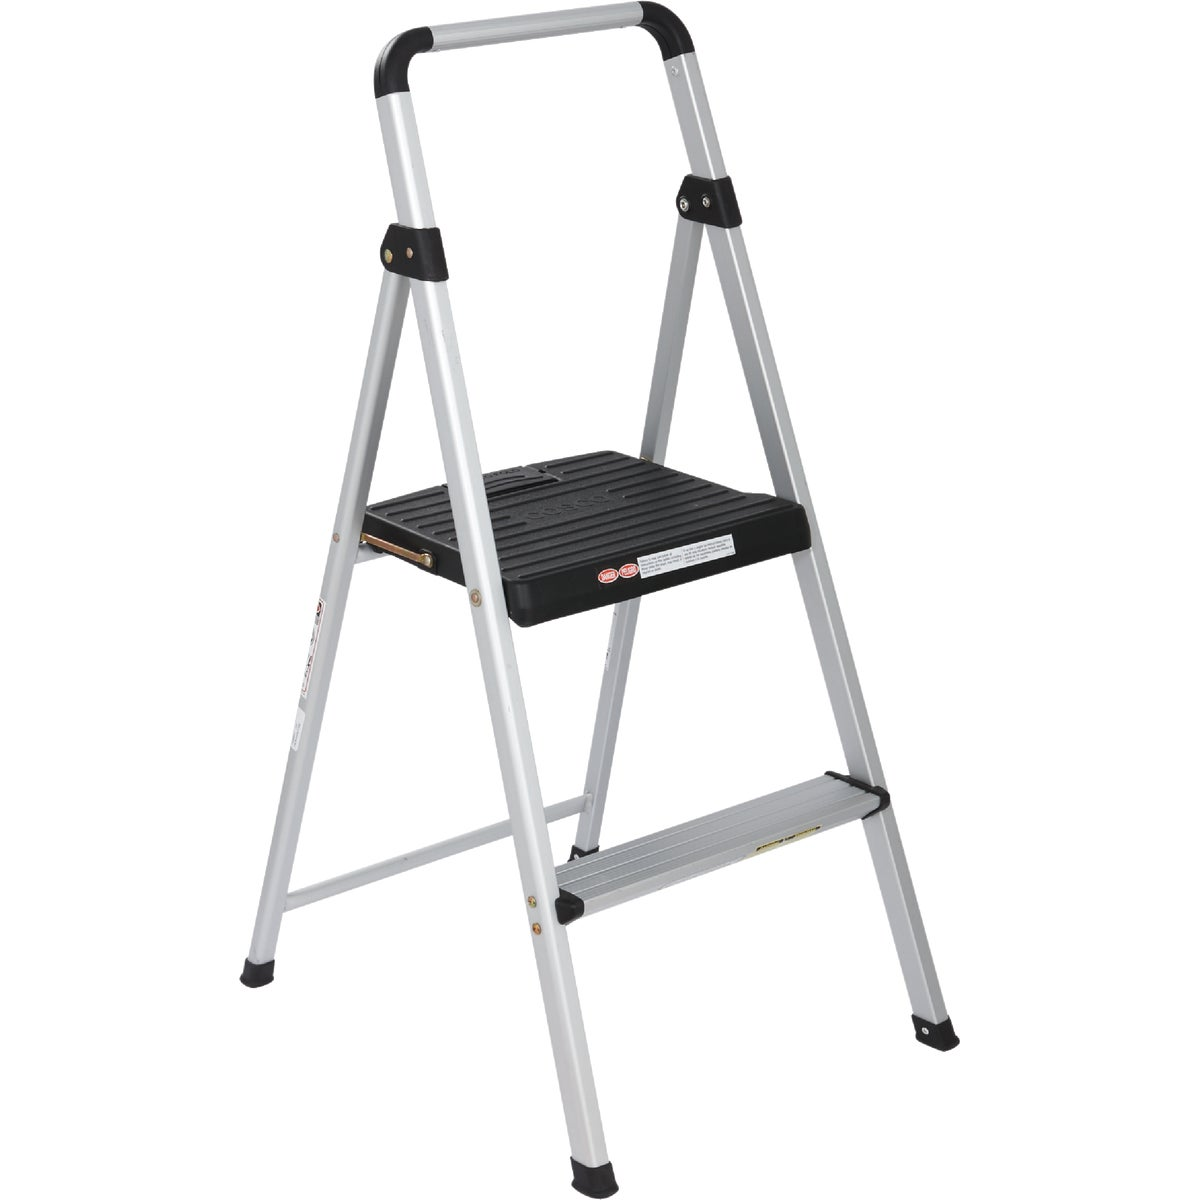 LIGHTWEIGHT STEP STOOL